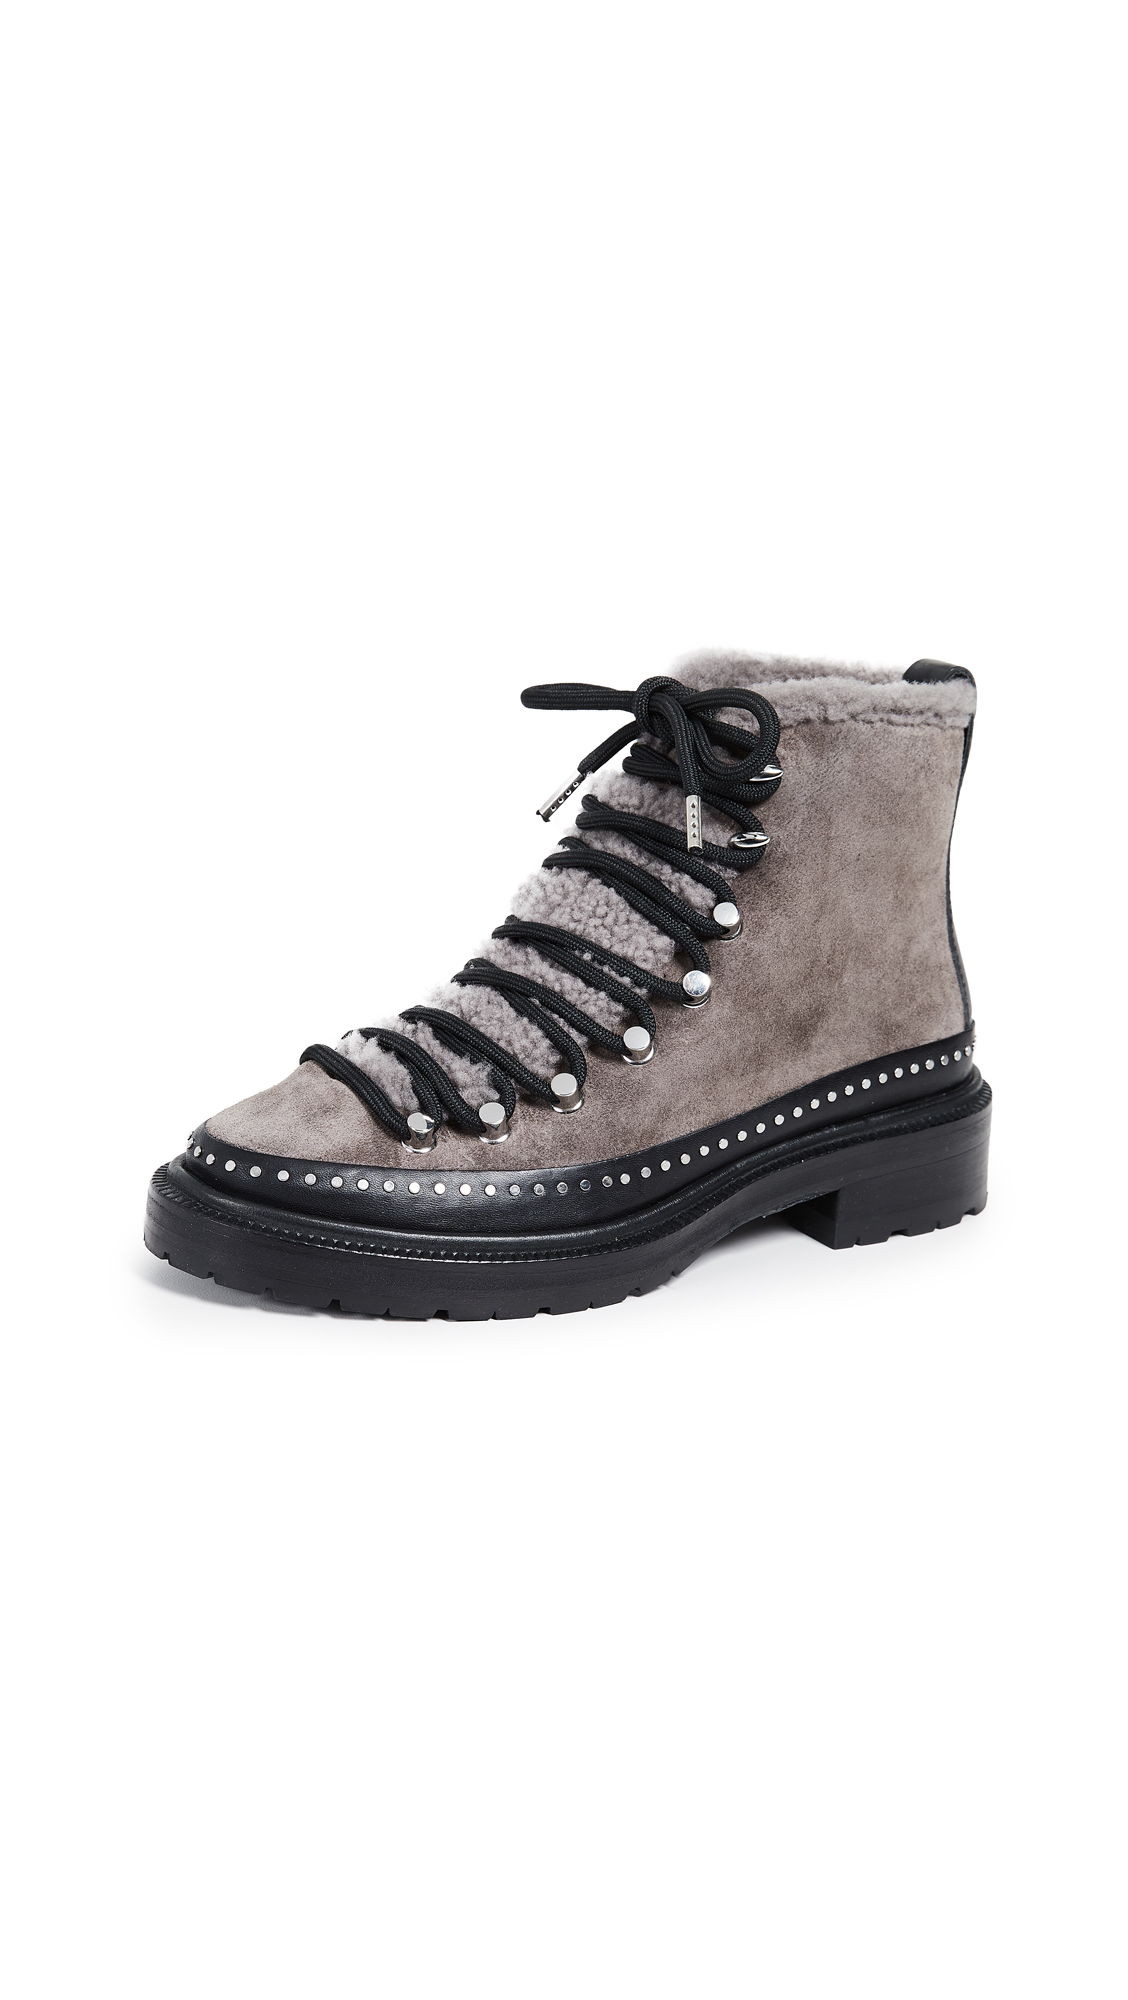 Rag & Bone Compass Boots